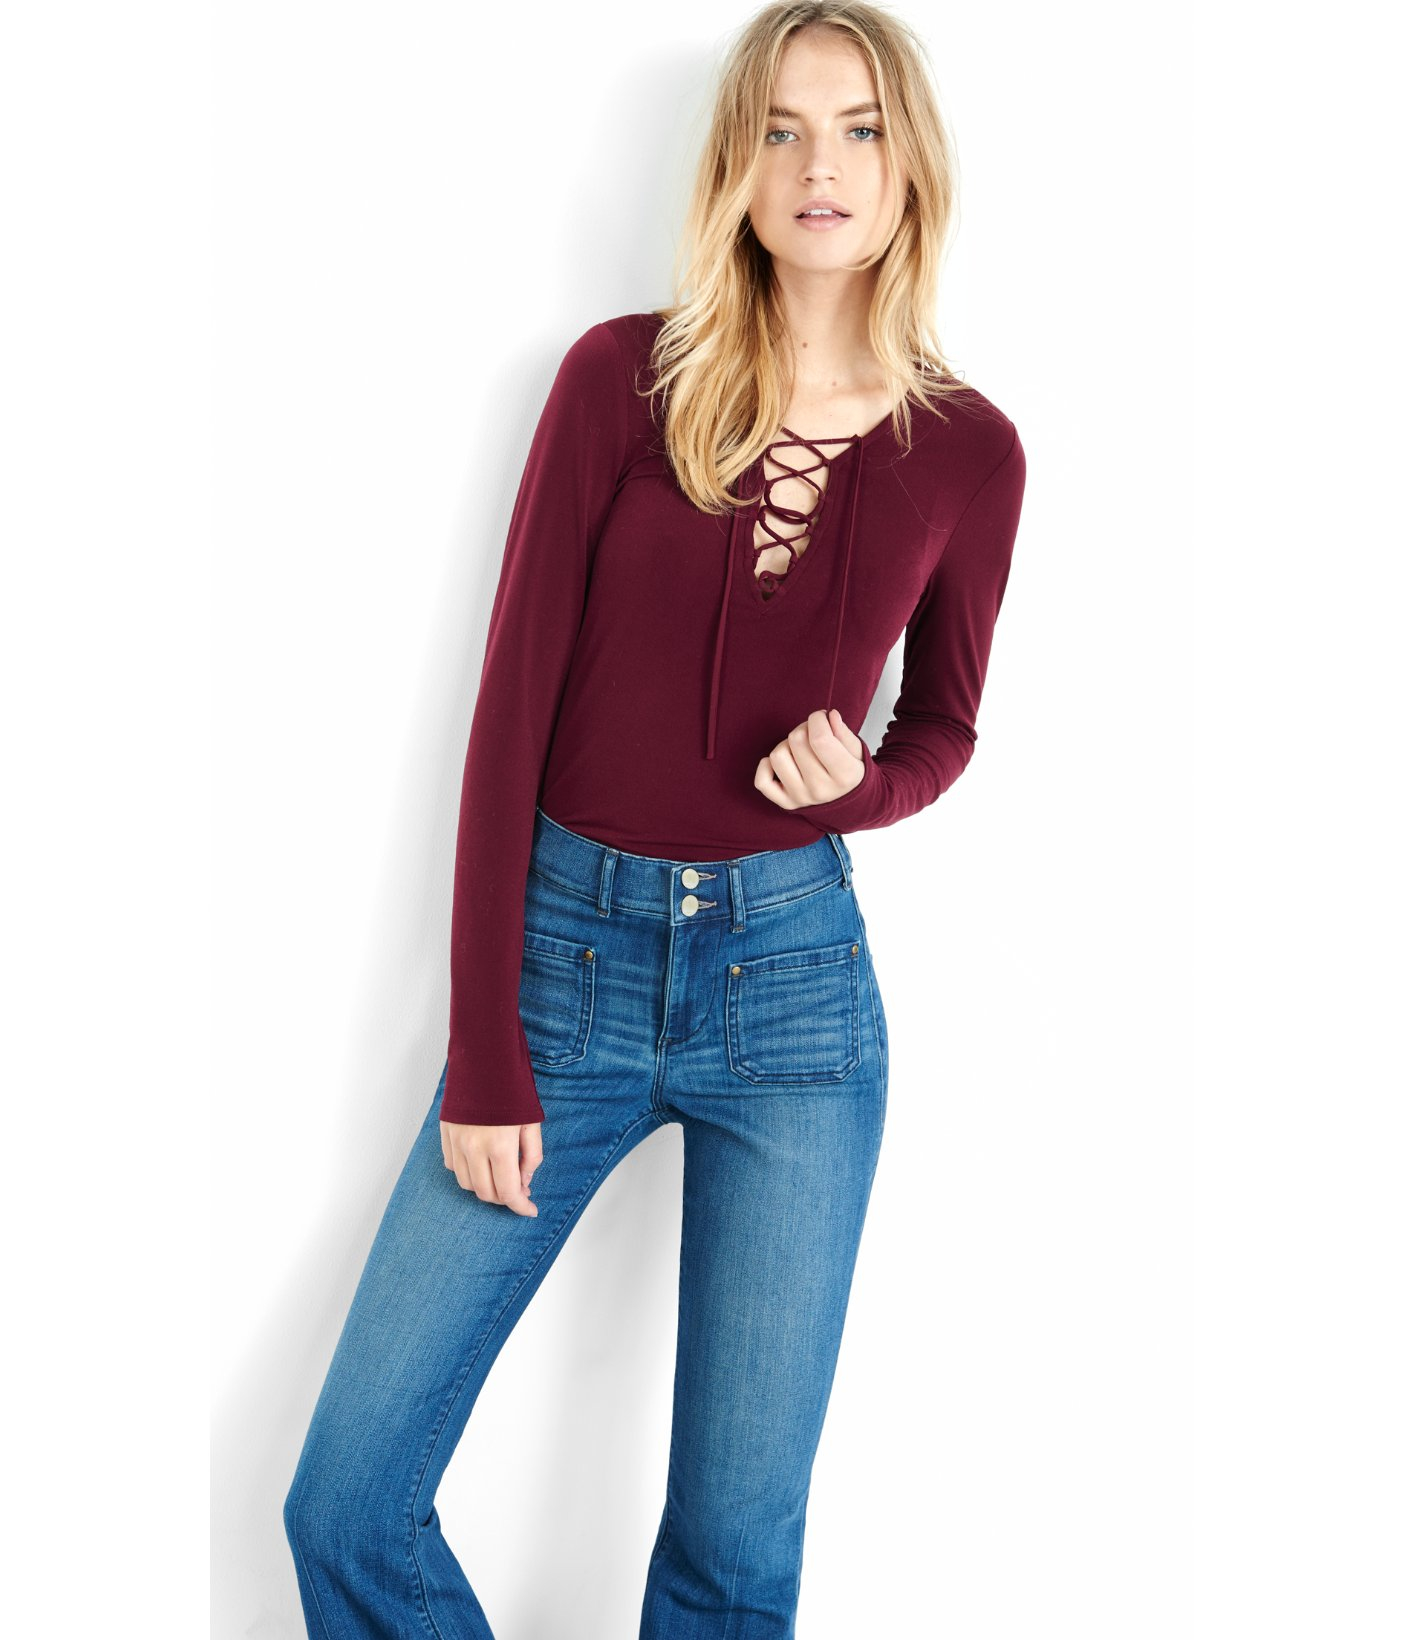 6a3ecc61d0d8 Lyst - Express Long Sleeve Lace-up Front Shirt in Red